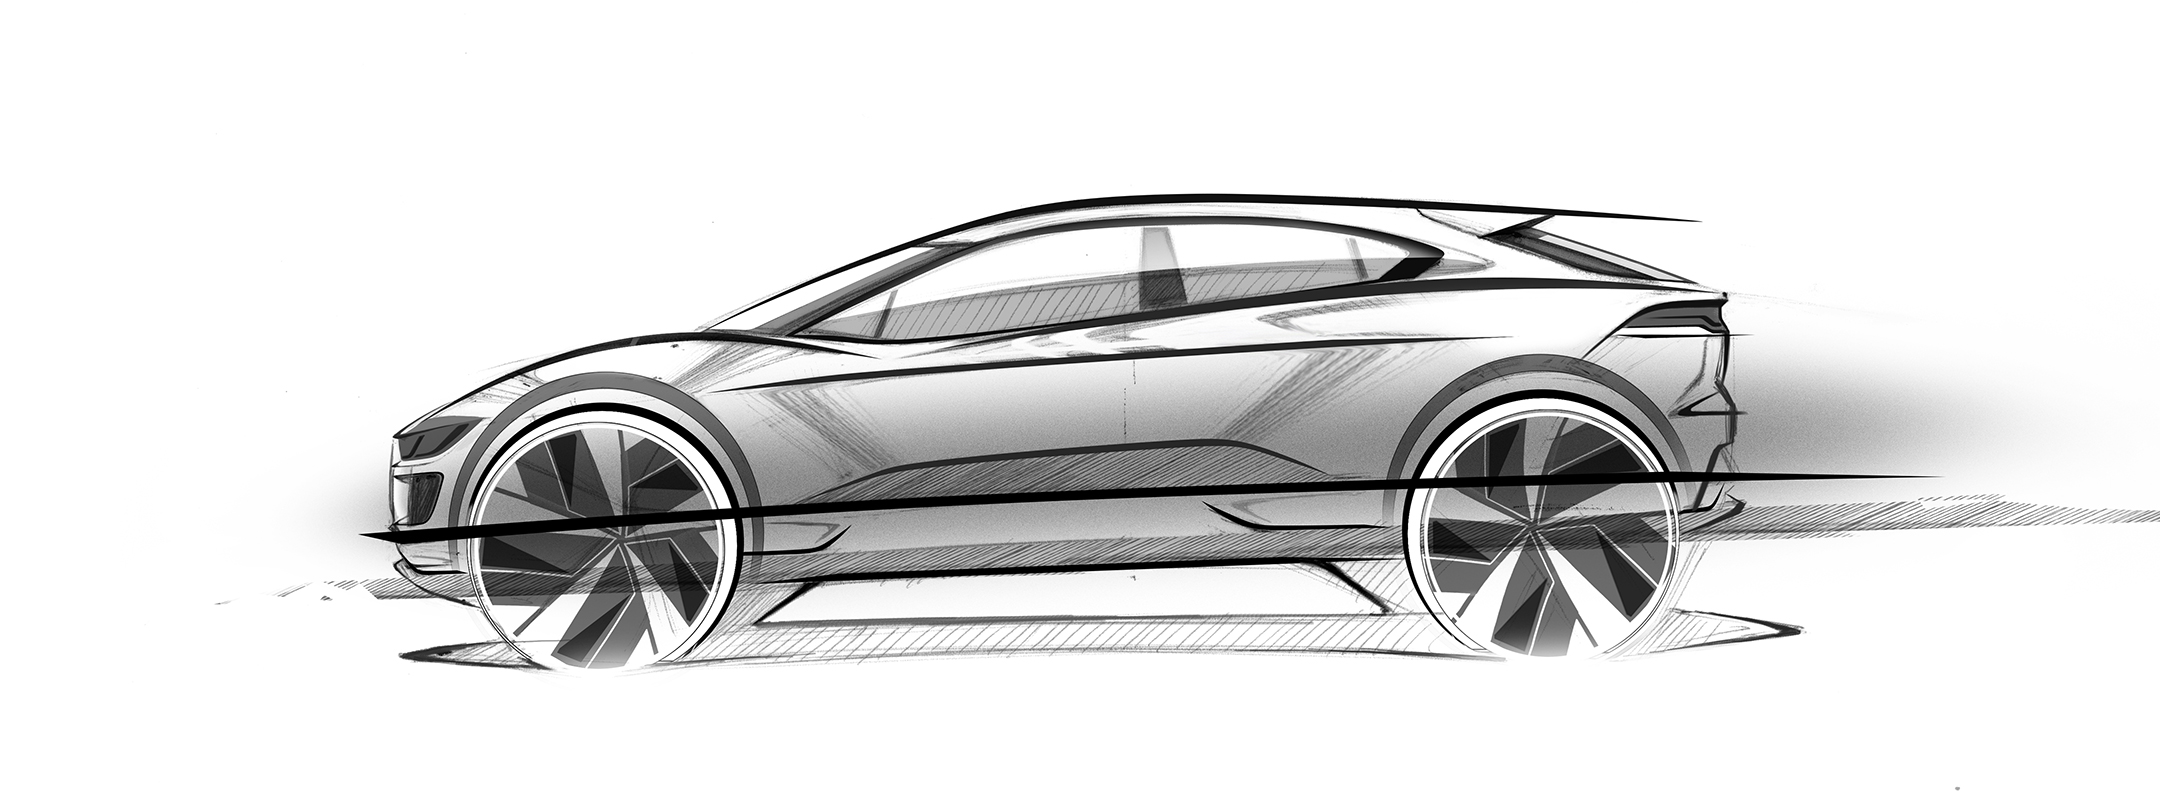 Jaguar I-PACE - 2018 - sketch - side-face / profil